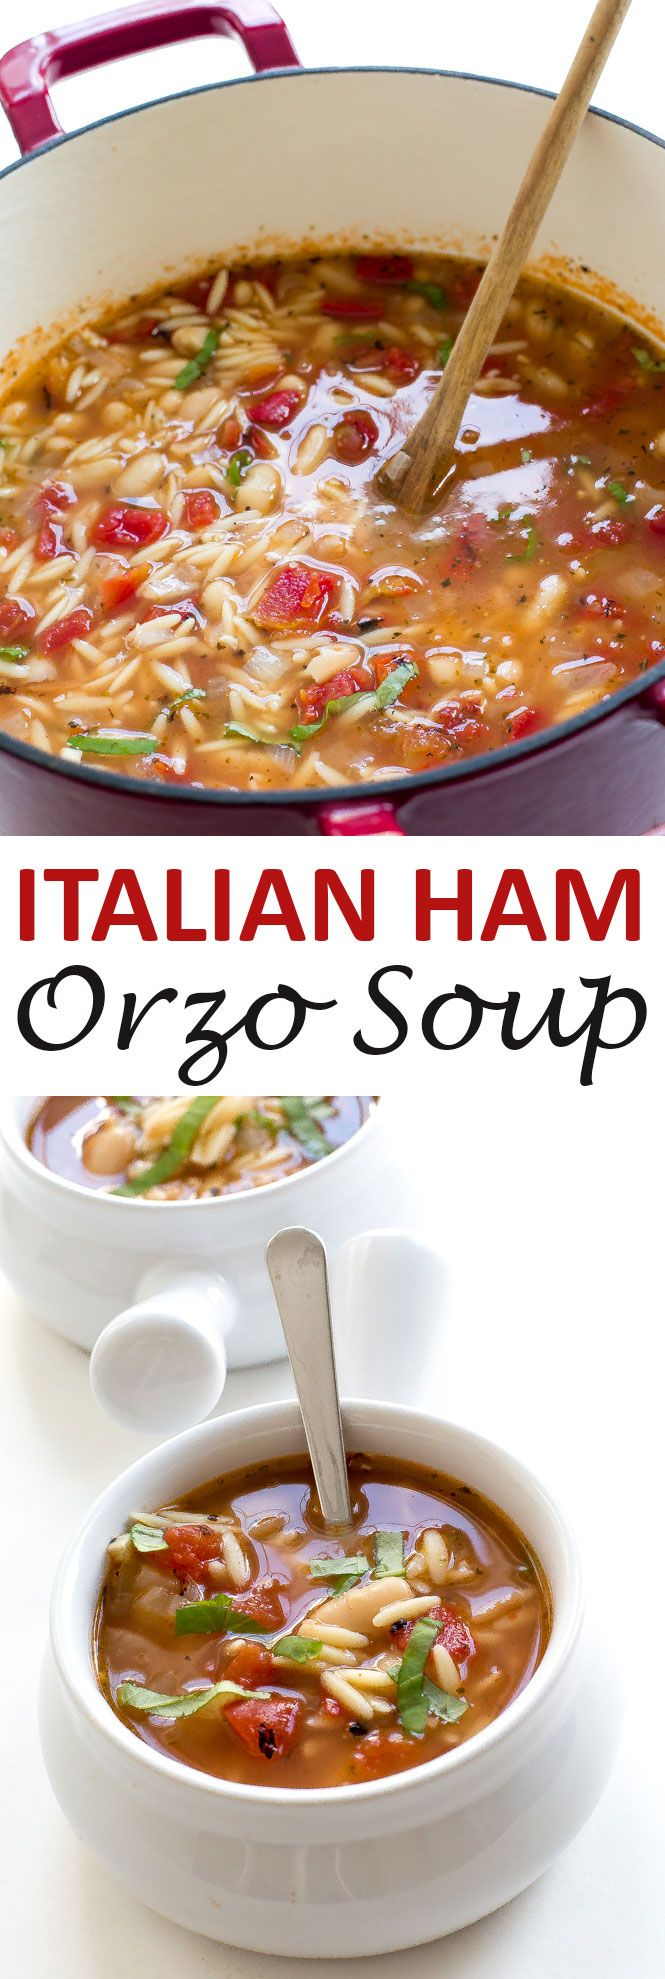 Italian Ham and White Bean Orzo Soup! A super easy dinner recipe that comes…